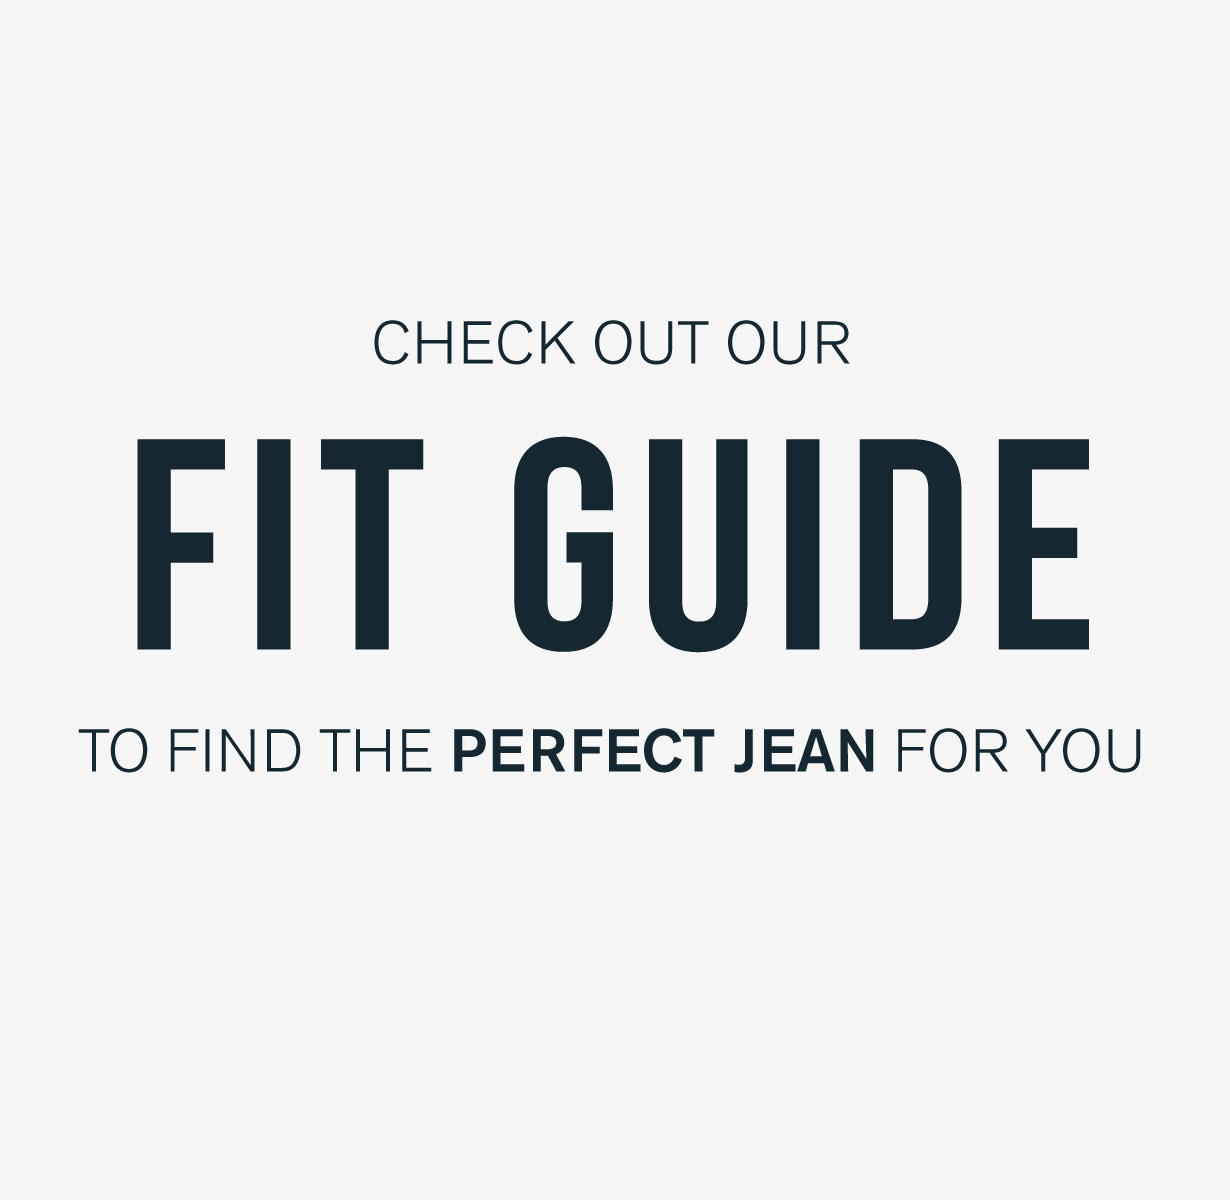 Check out our fit guide to find the perfect jean for you.